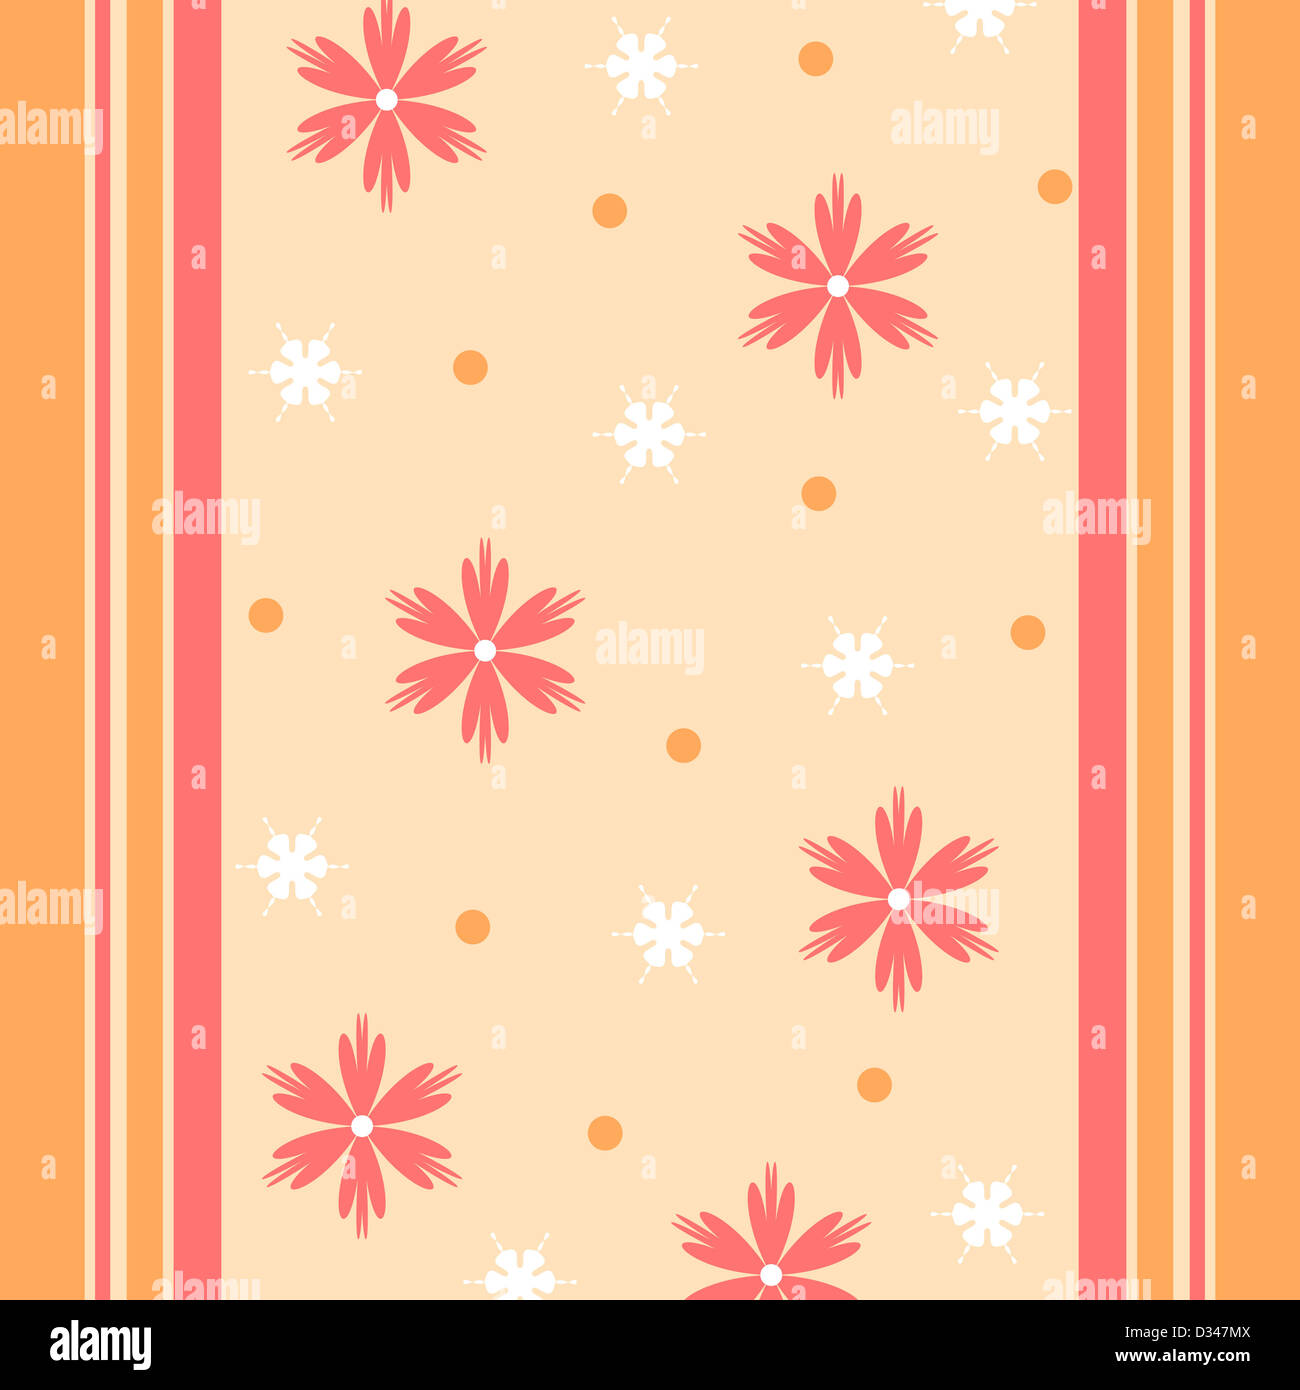 Artistic flowers and stripes pattern in orange and yellow colors Stock Photo